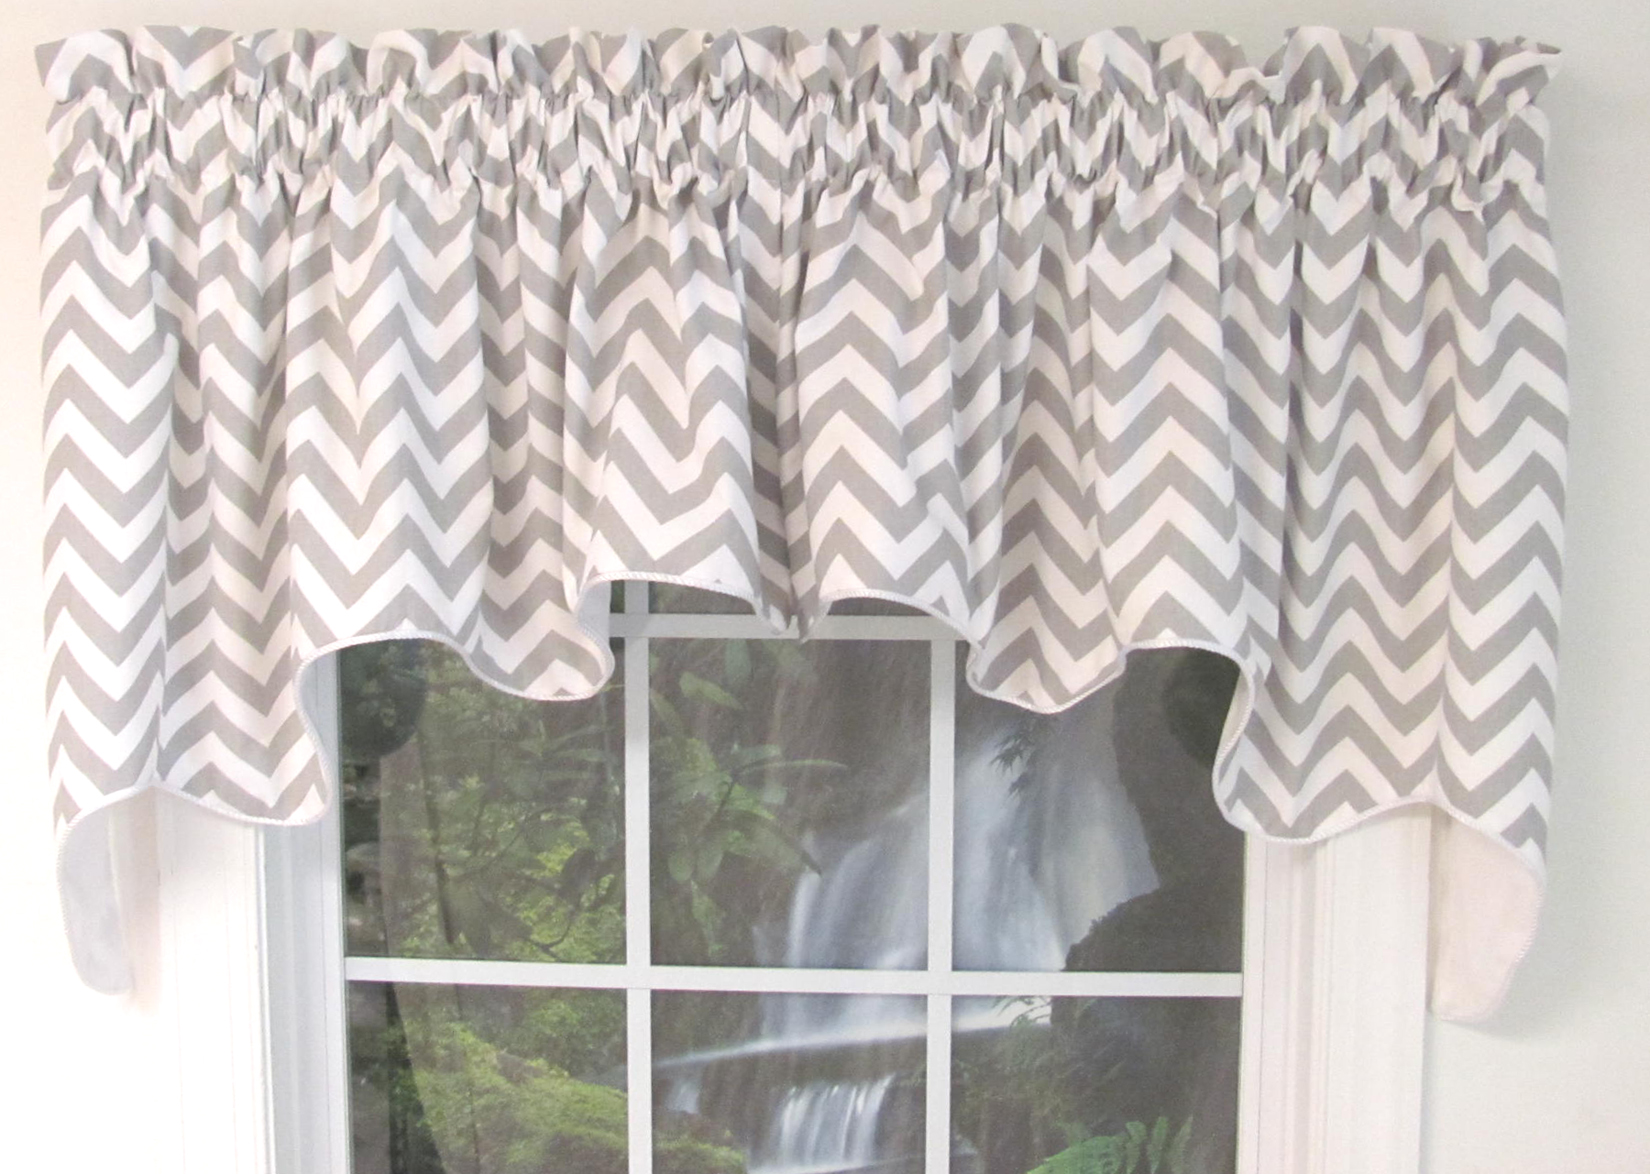 valances, swags & window toppers - thecurtainshop